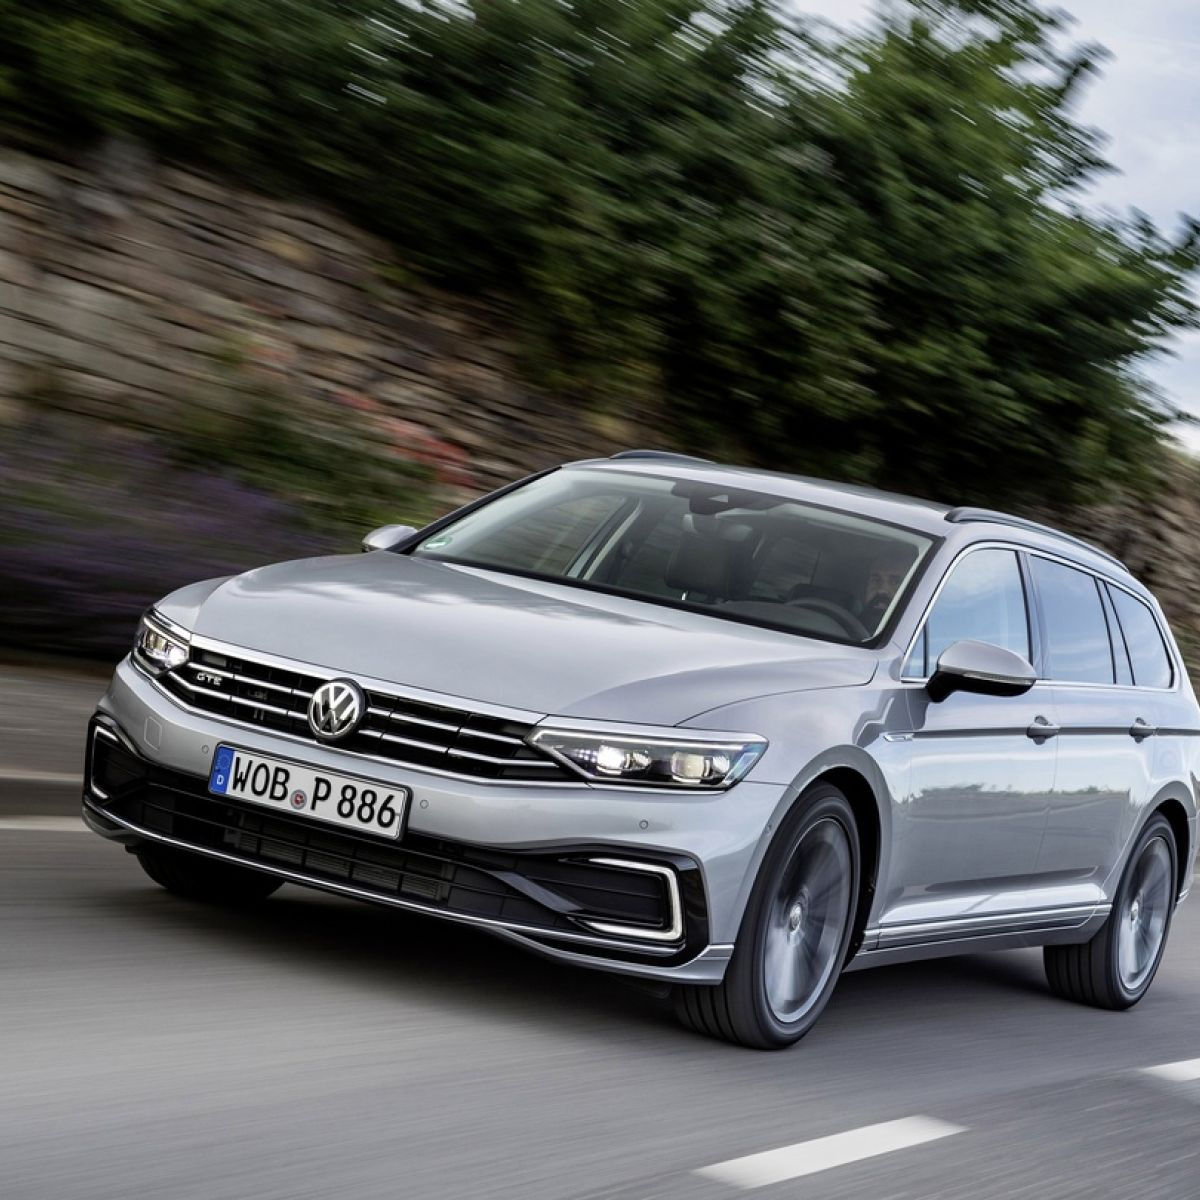 Search Results New Vw Caddy 2020 within 2021 Volkswagen Passat Alltrack, Sport Specifications, Crash Test